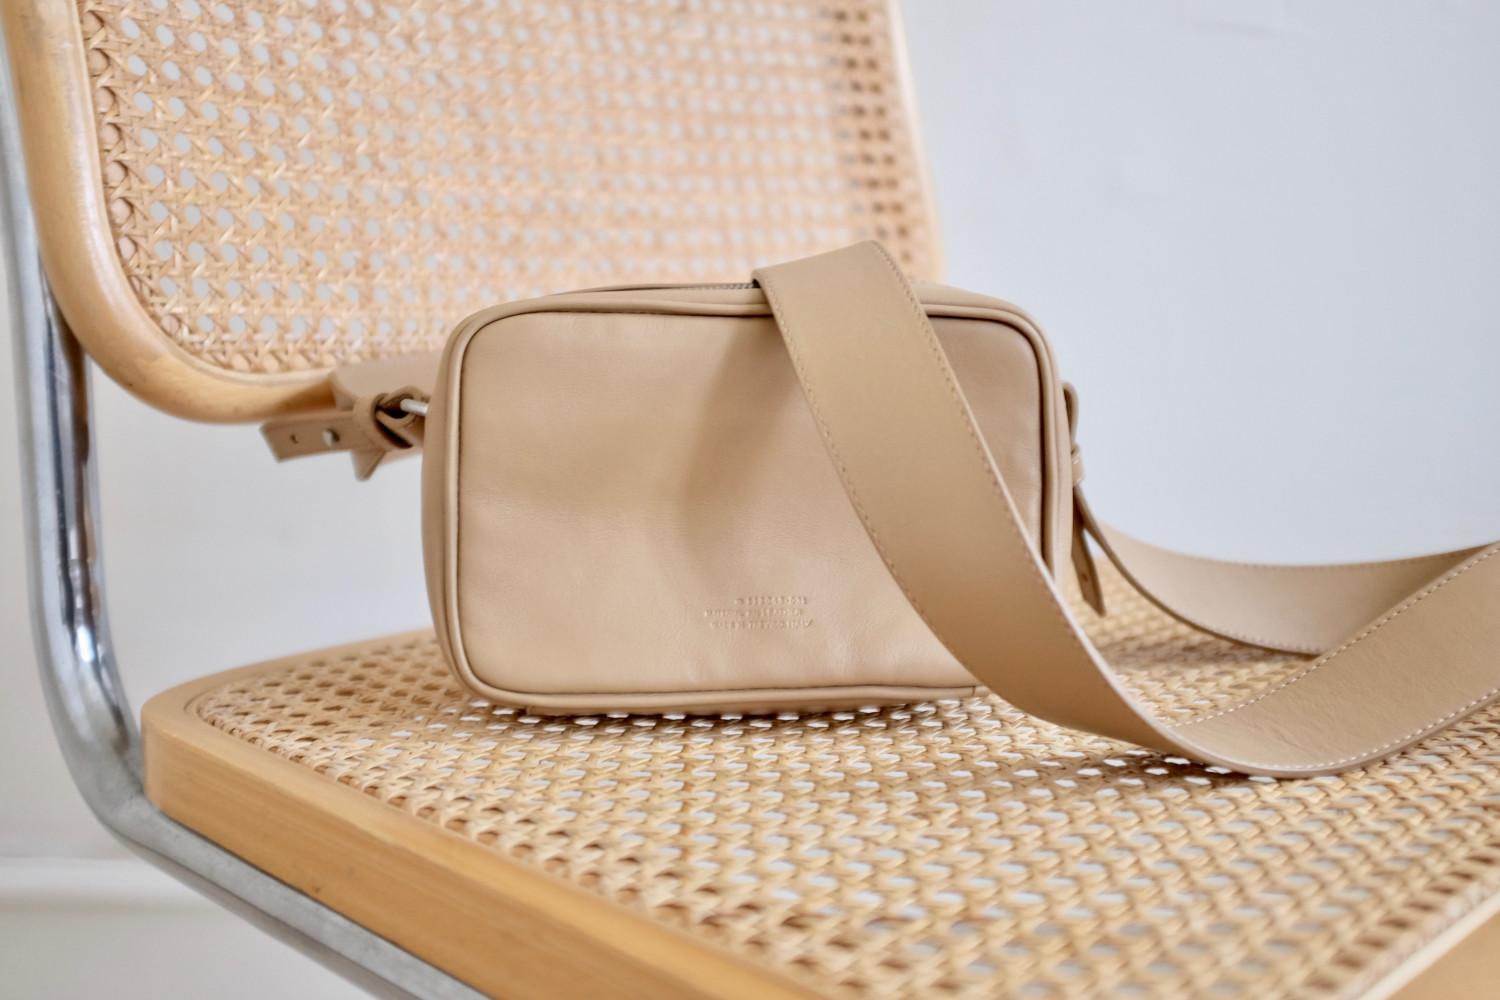 Beige Bag - Camera Bag from Arket